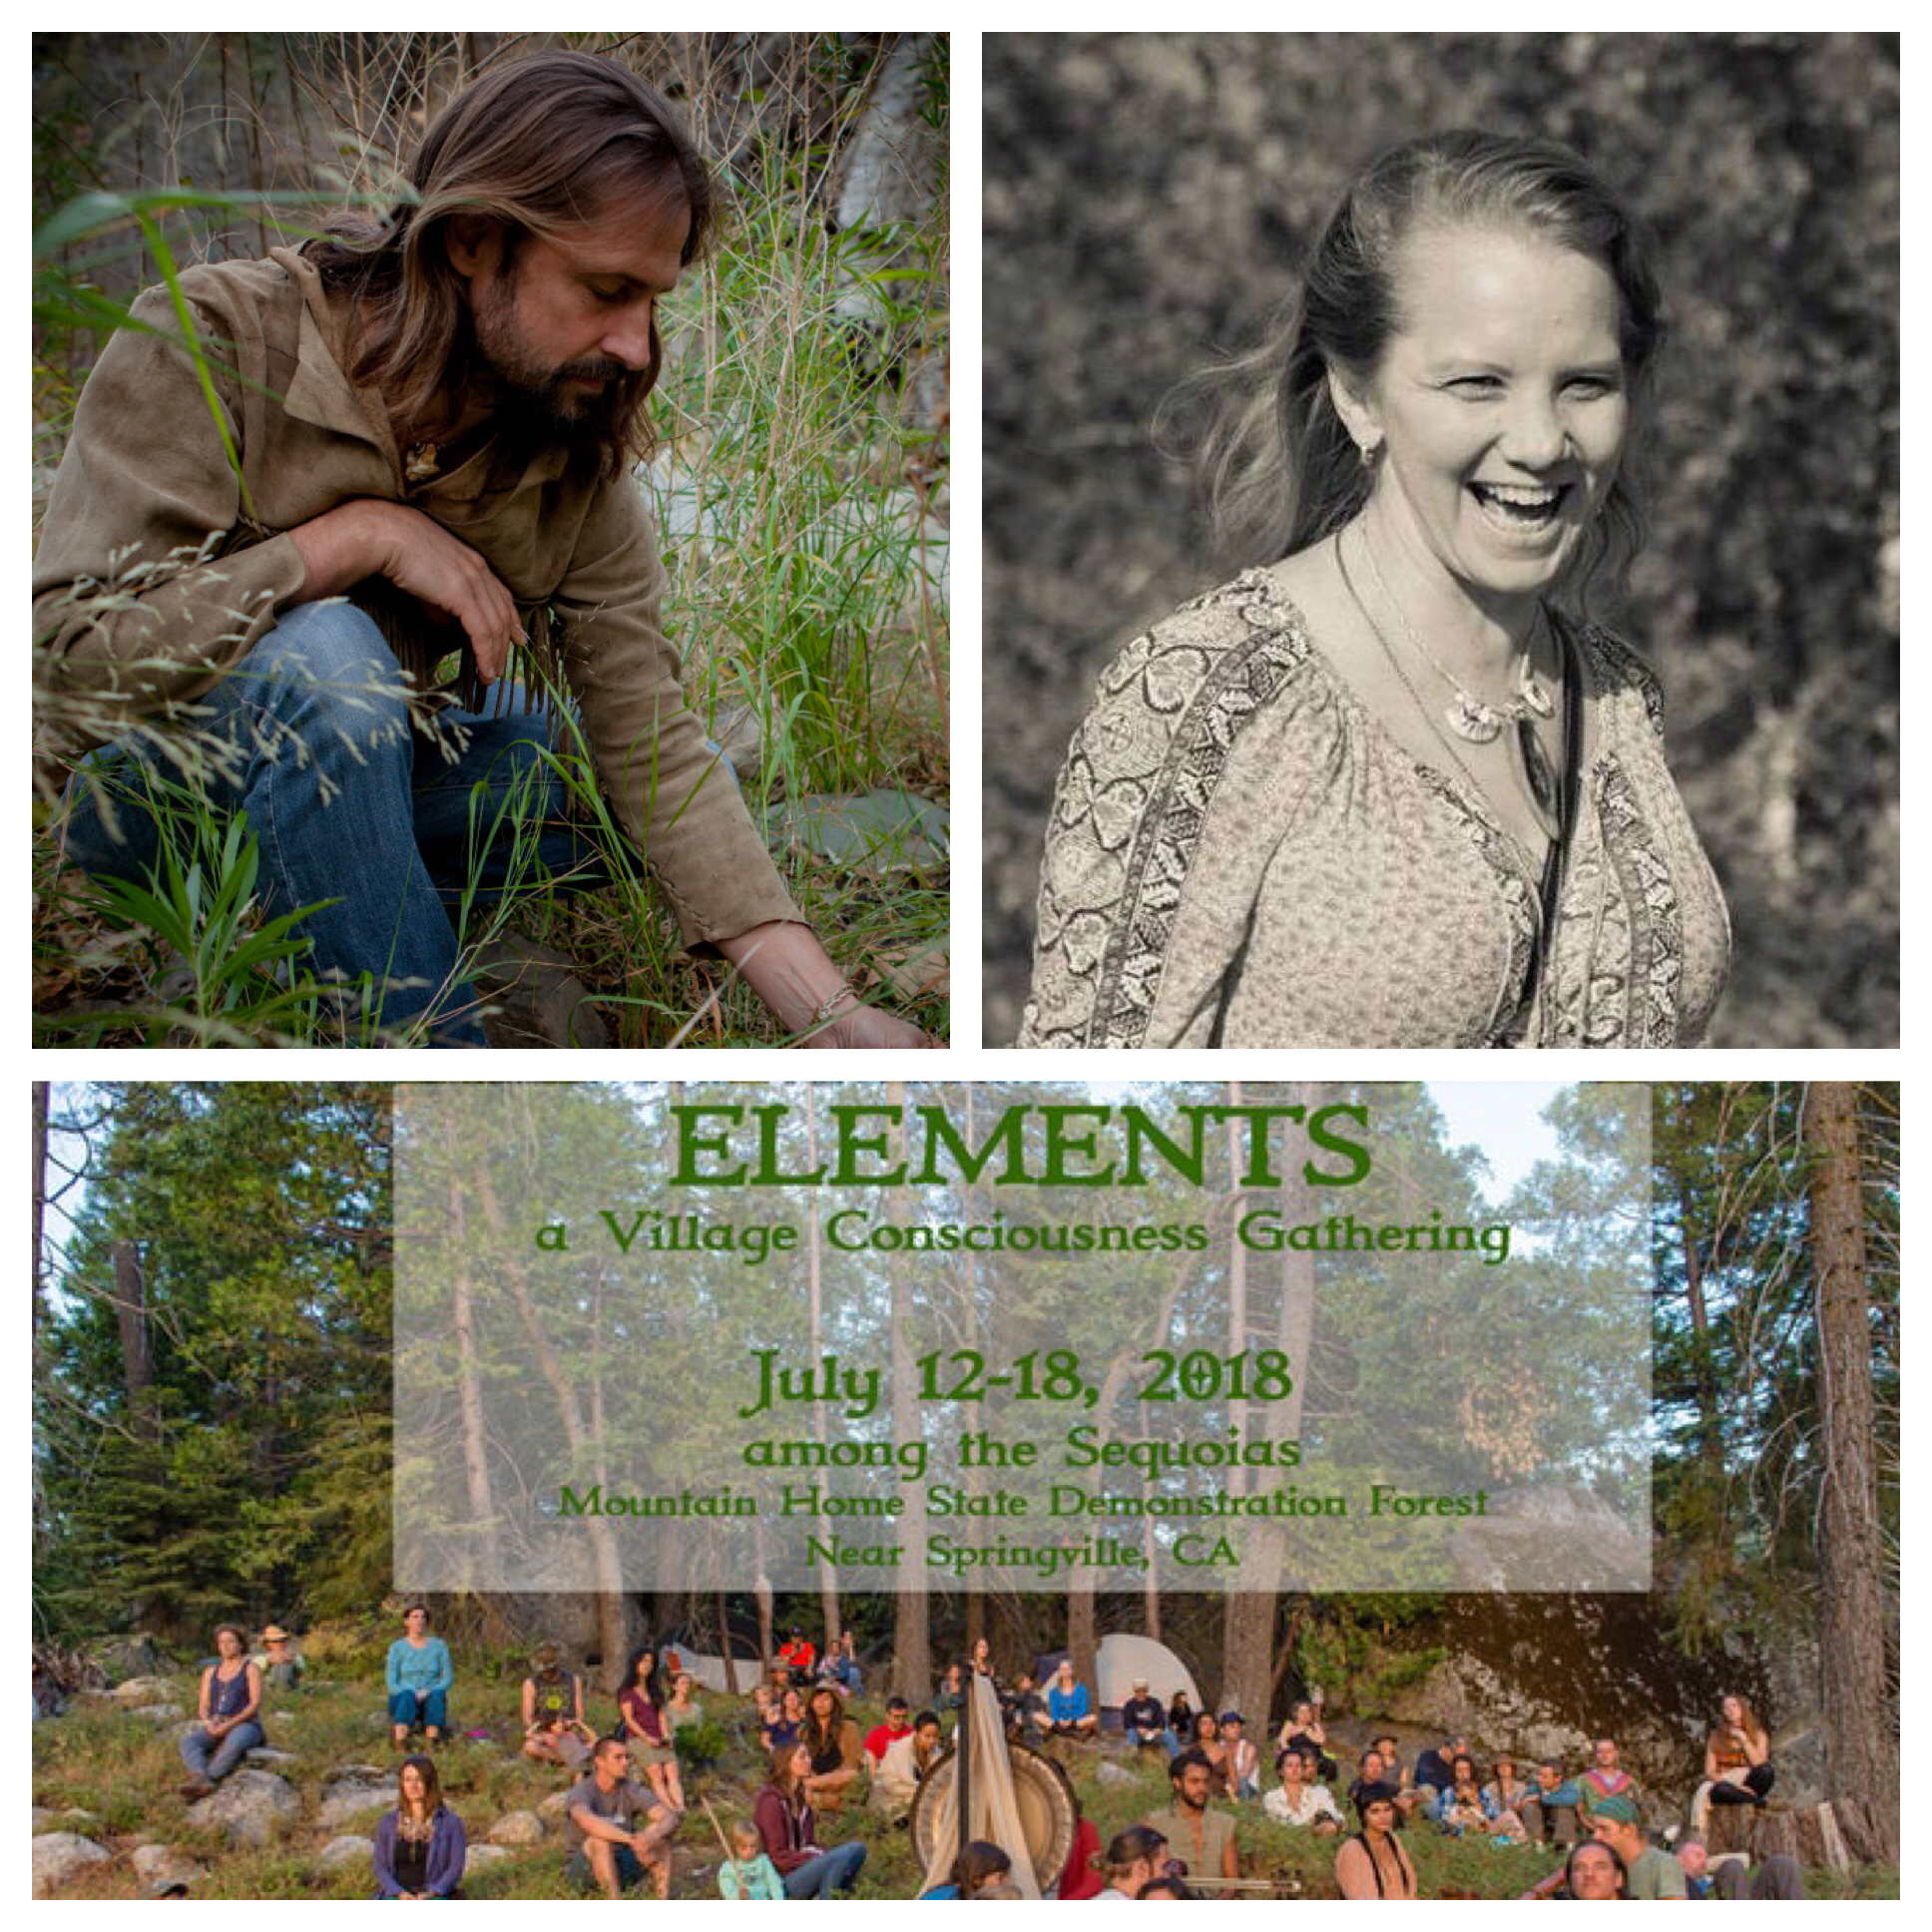 Top: Photos of Chris Morasky, Rachel Natland via  Wisdom Keepers . Bottom photo:  Elements Gathering .